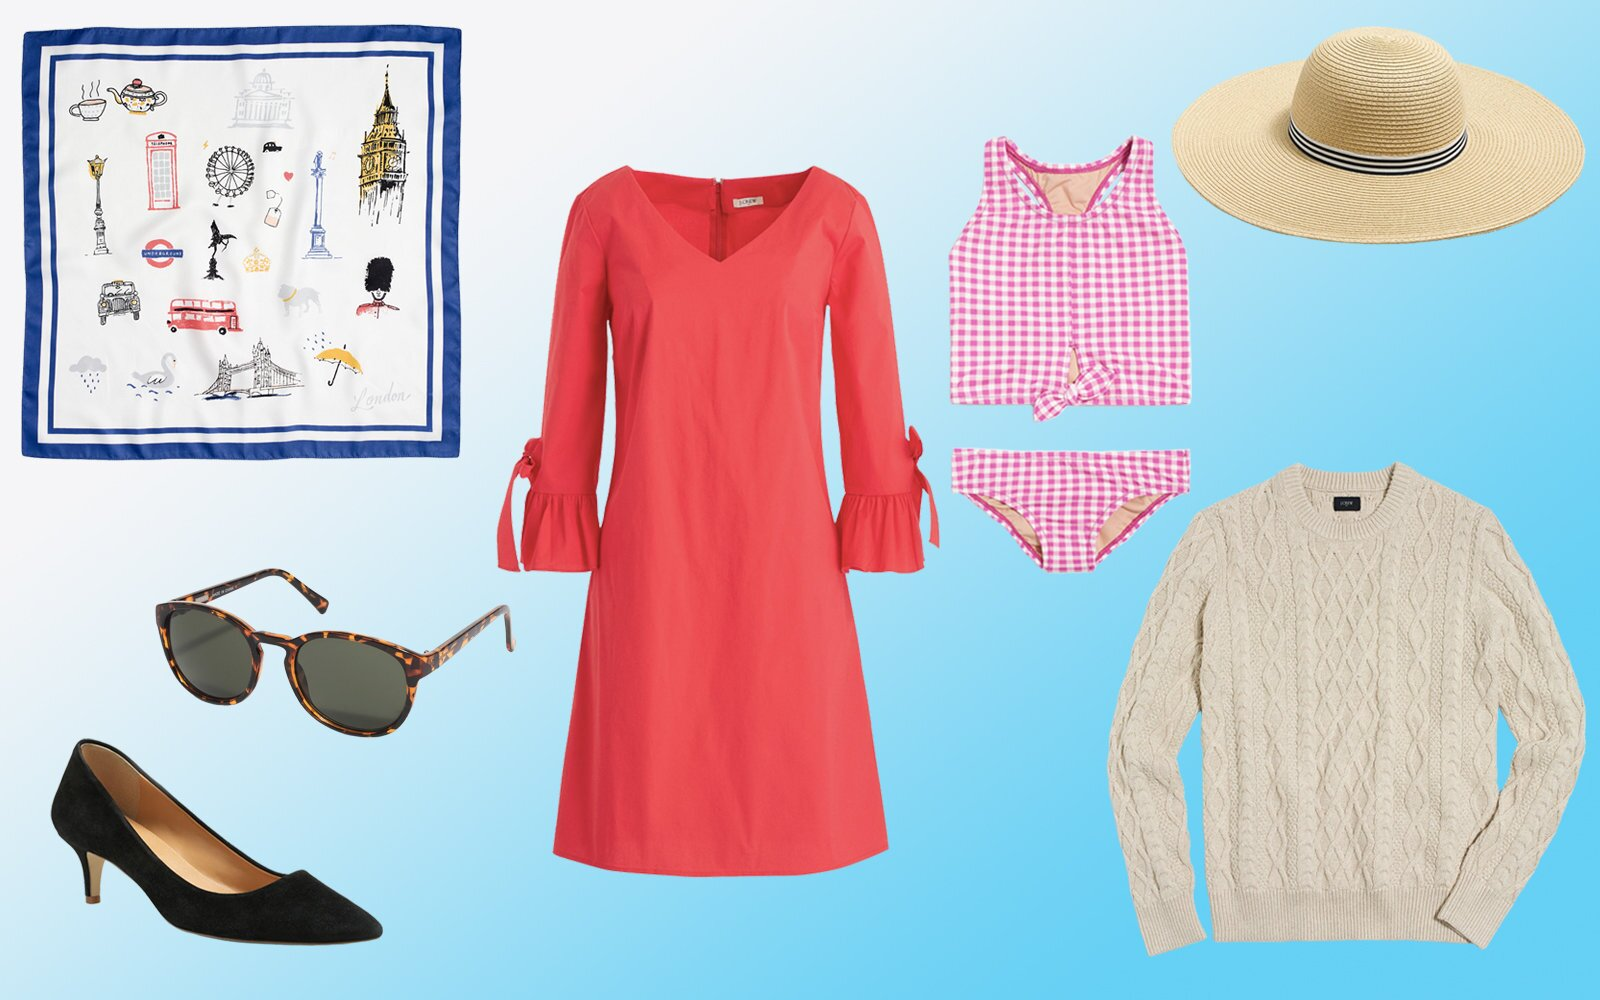 4e3a737cd J.Crew's 50% Off Everything Sale: 11 Picks for the Whole Family | Travel +  Leisure